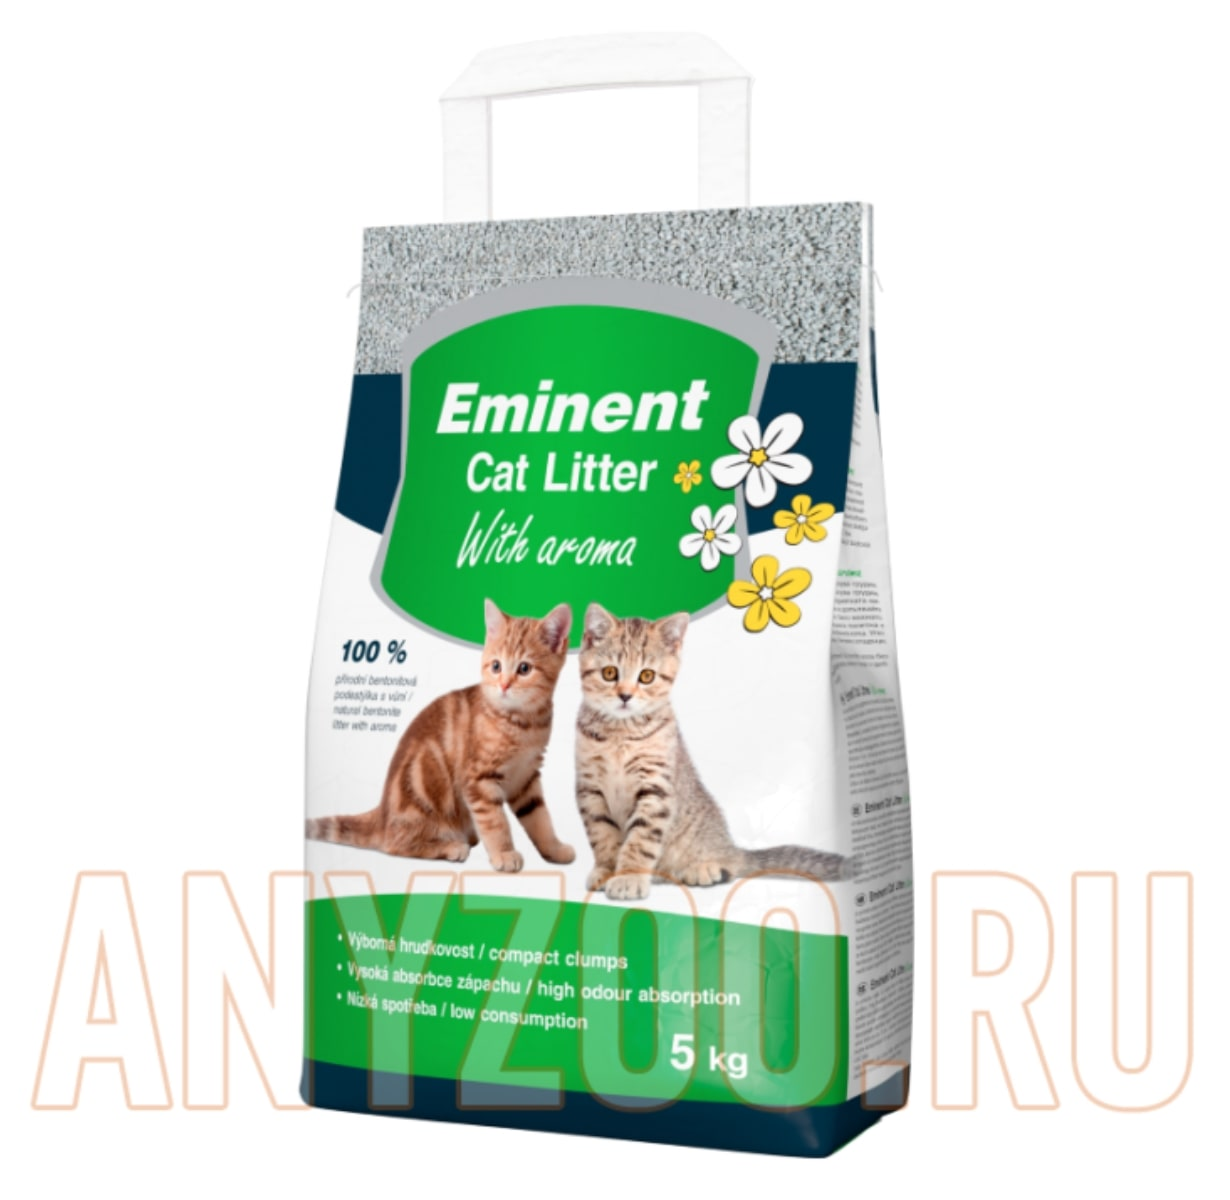 Cat litter litres to kg